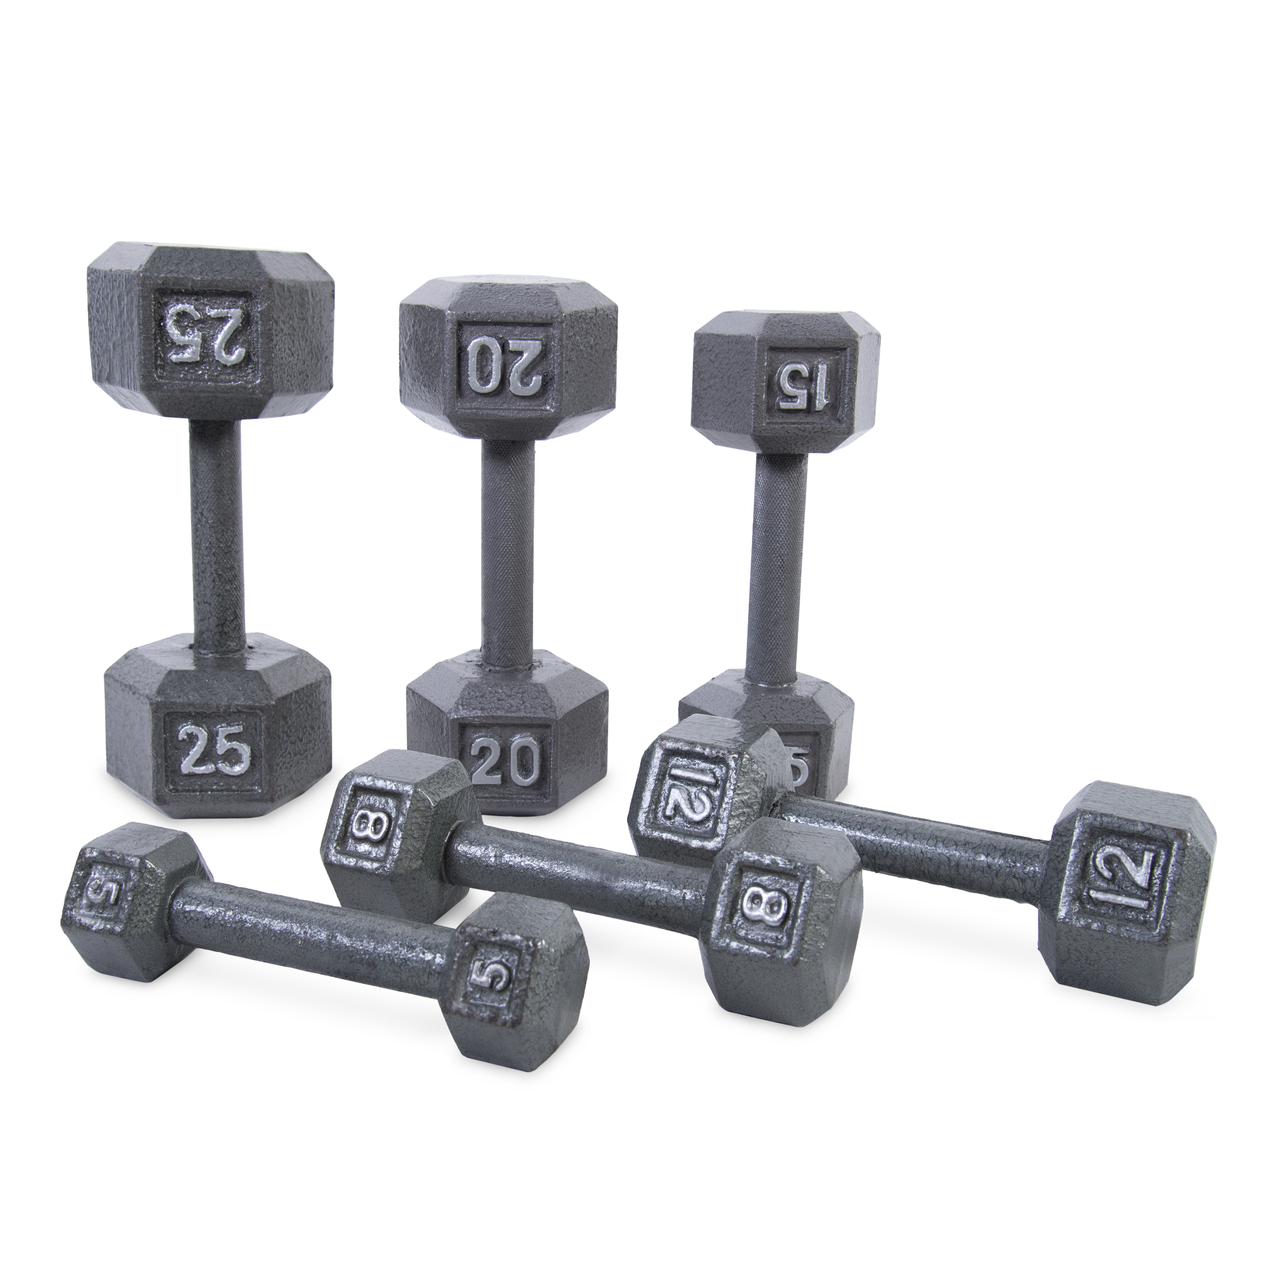 20 Pound Hex Dumbbell Strength Training Upper Body Cast Iron Knurled Handle Grip